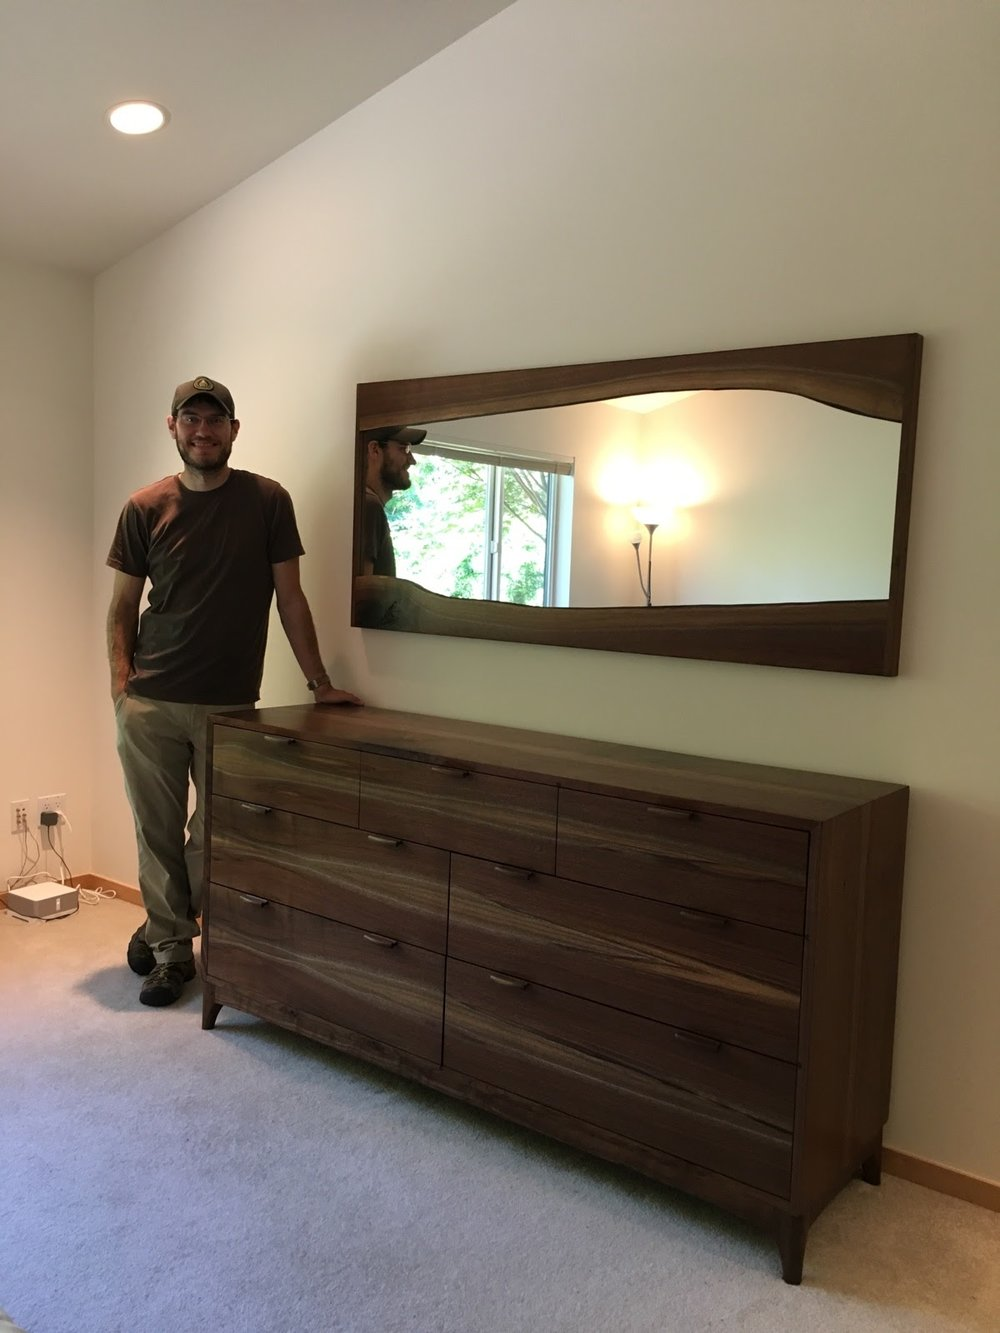 Posing with the dresser and matching live-edge mirror